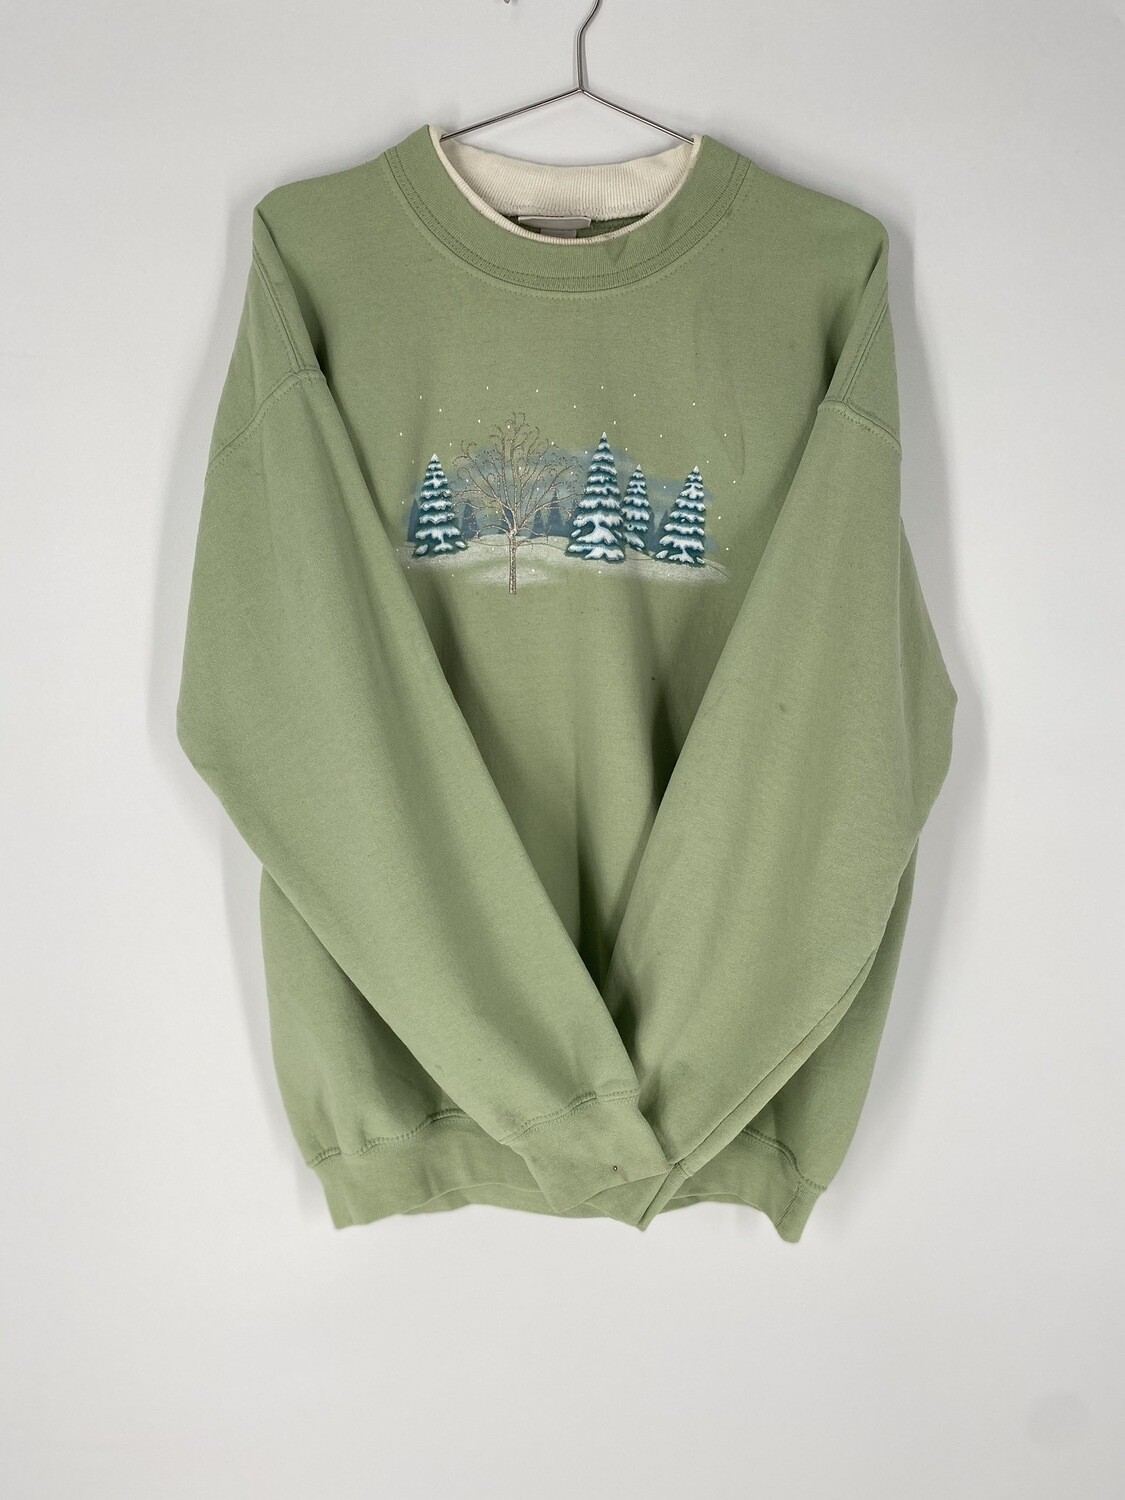 Green Holiday Sweatshirt Size L